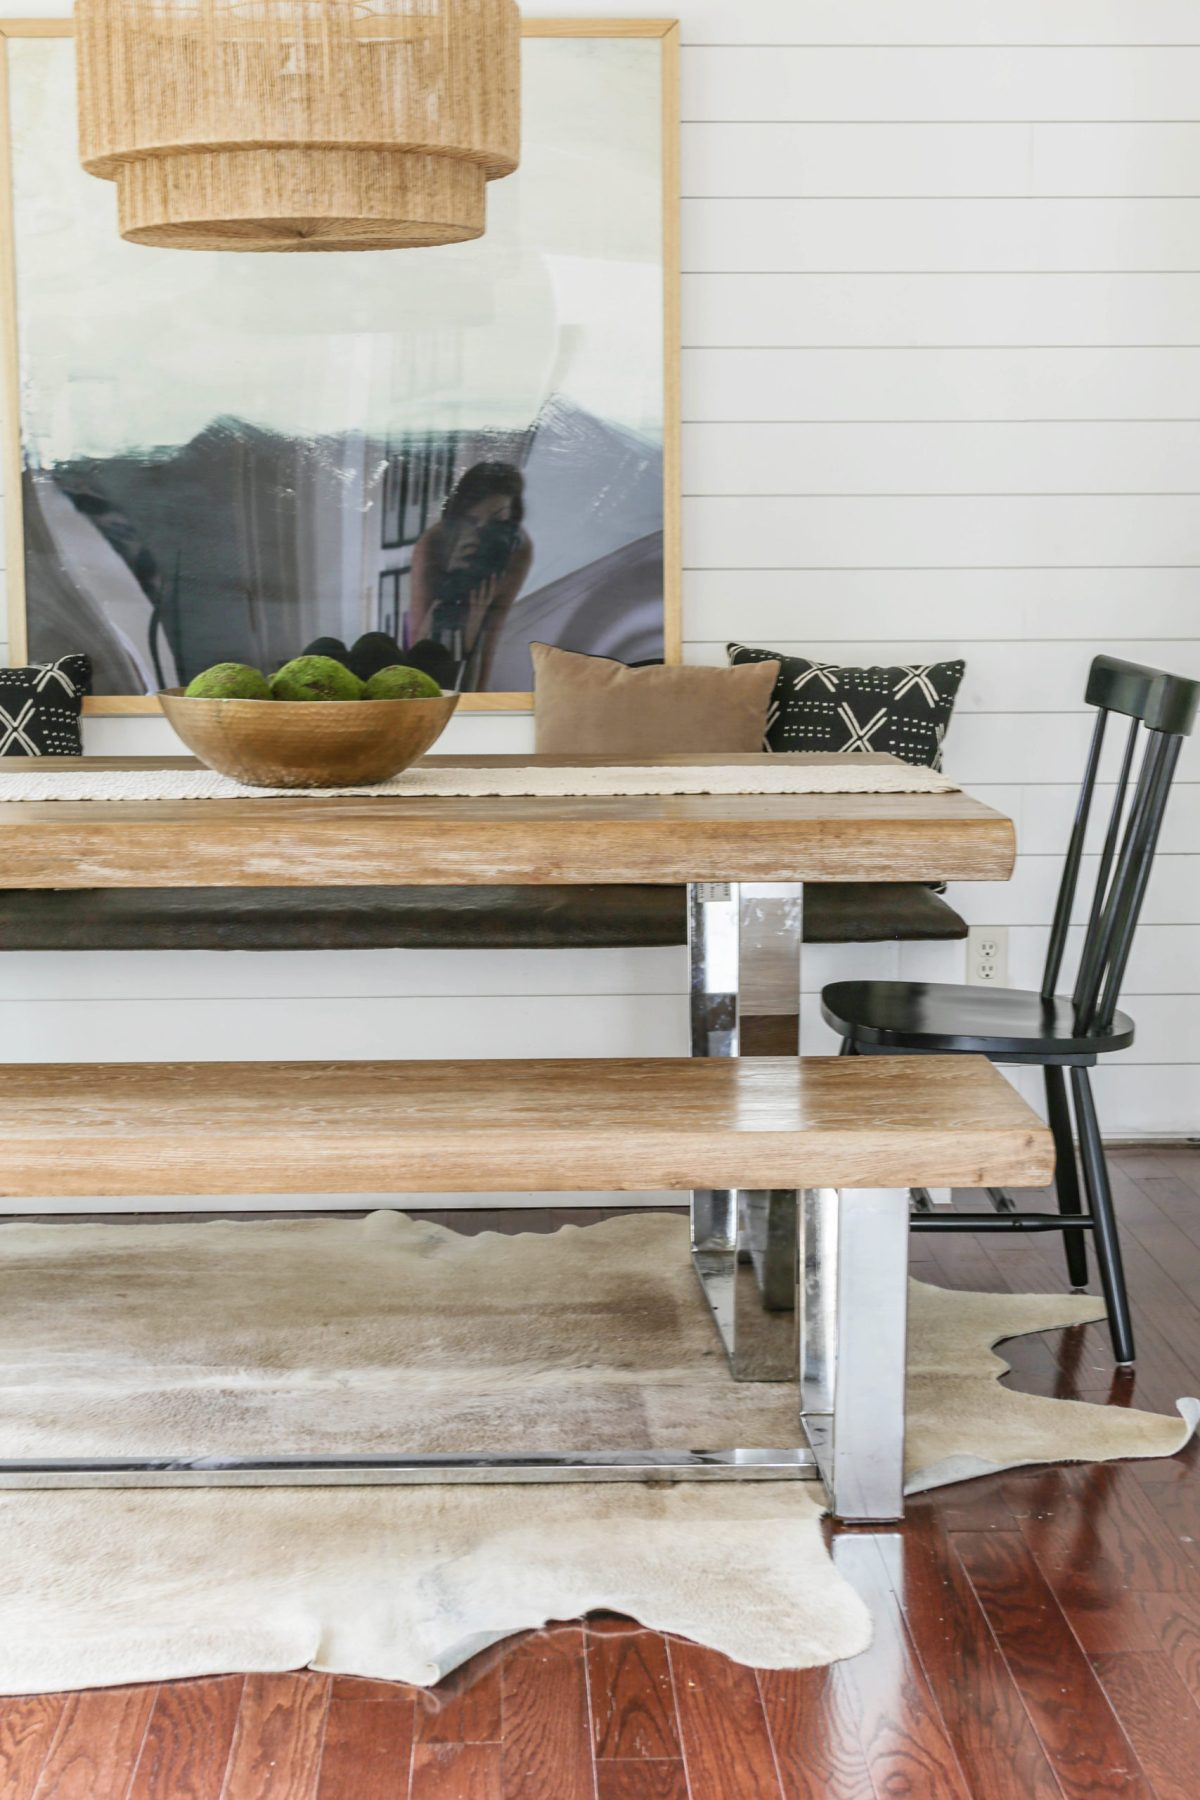 How To Upholster A Banquette Dining Bench On The Cheap